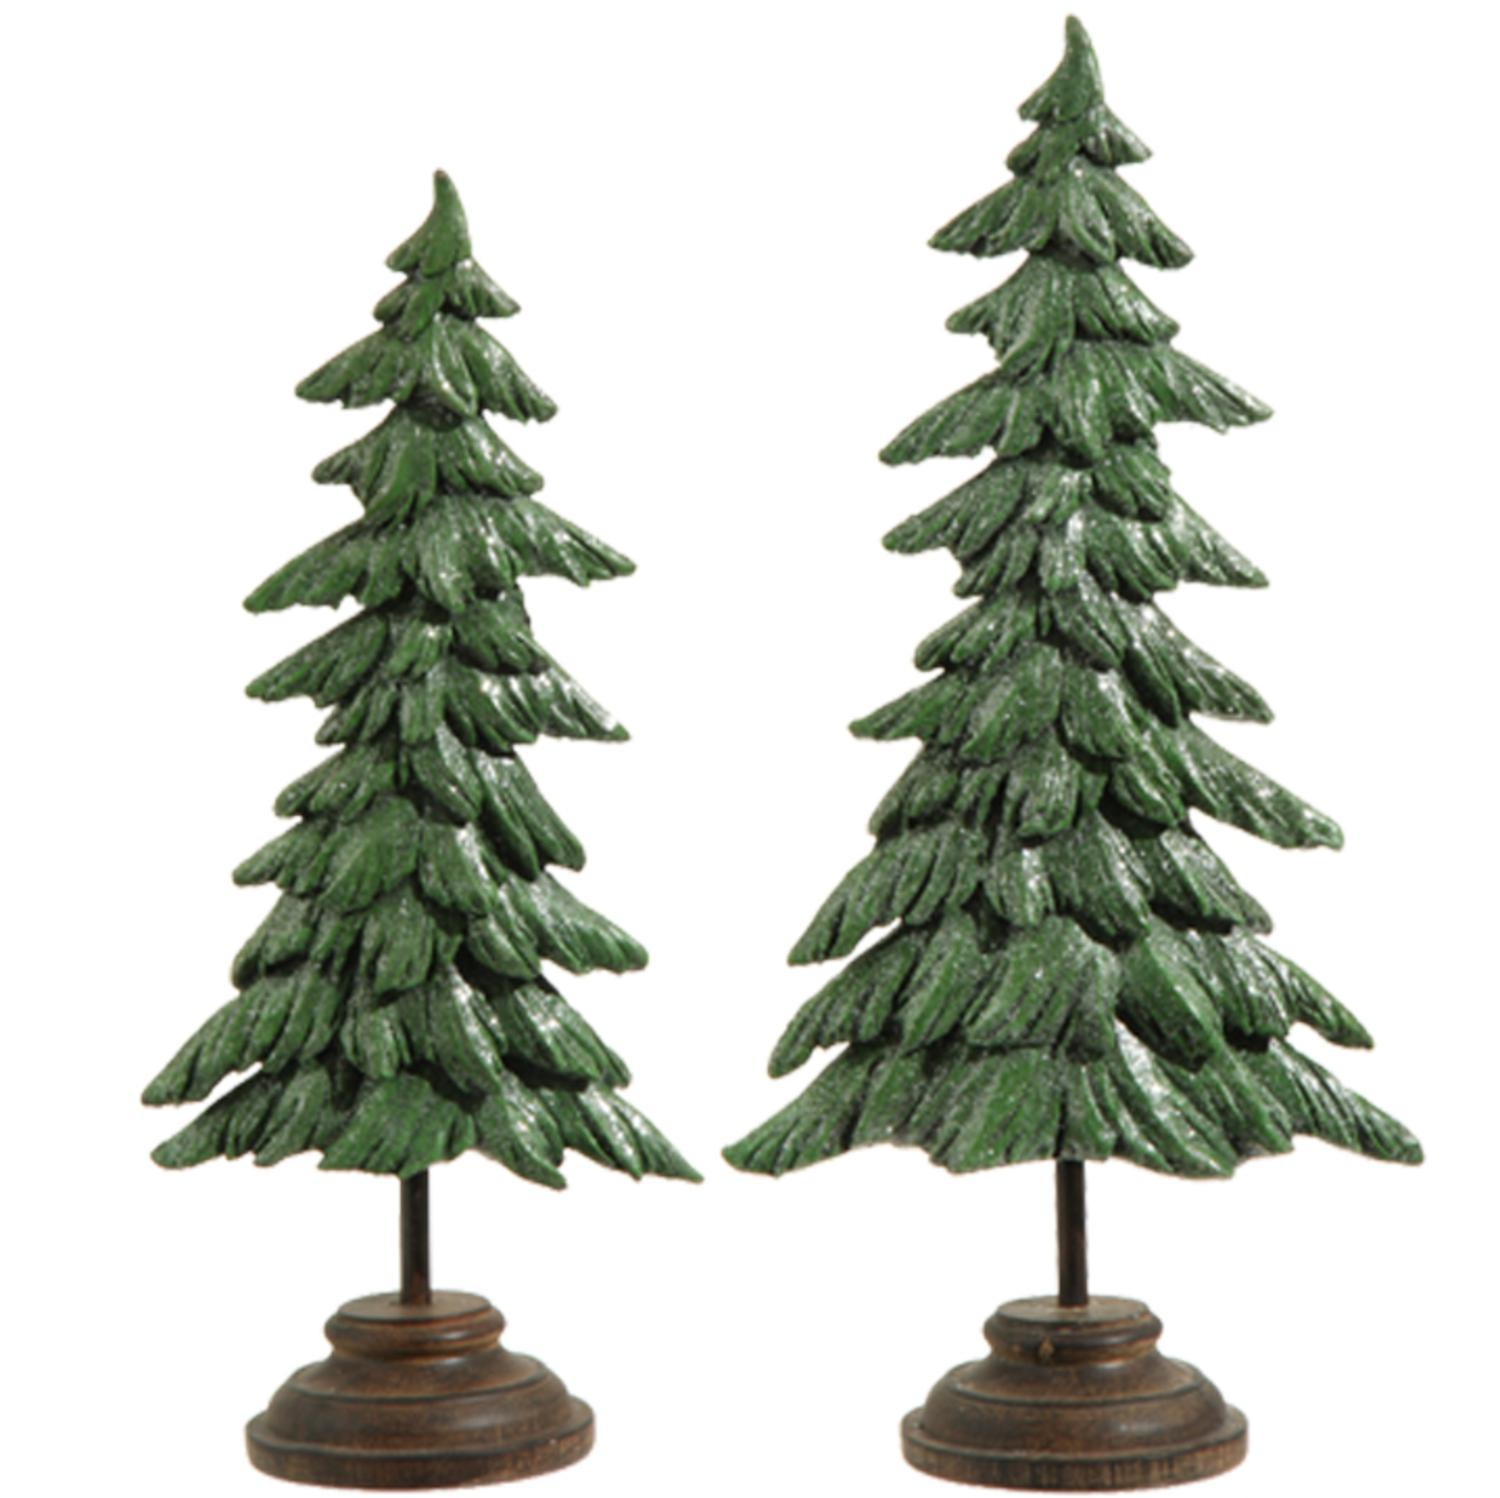 Set of 2 Green and Brown Glitter Pine Tree Christmas Decorations 17""